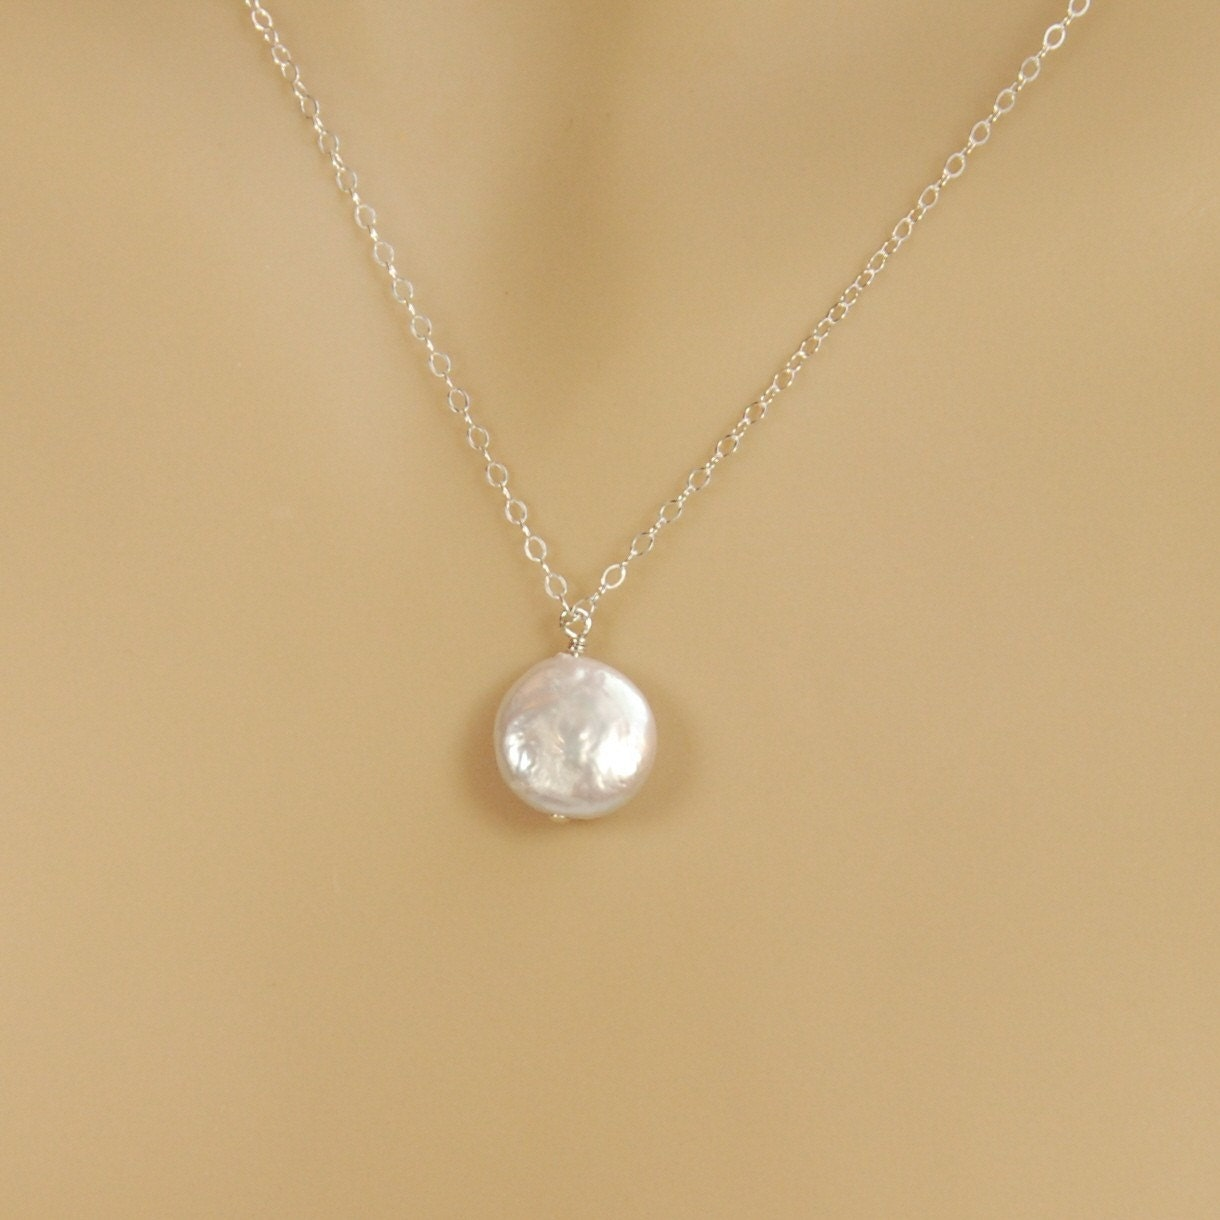 Necklace With A Pearl: Bridesmaid Pearl Necklace Single Coin Pearl In Sterling